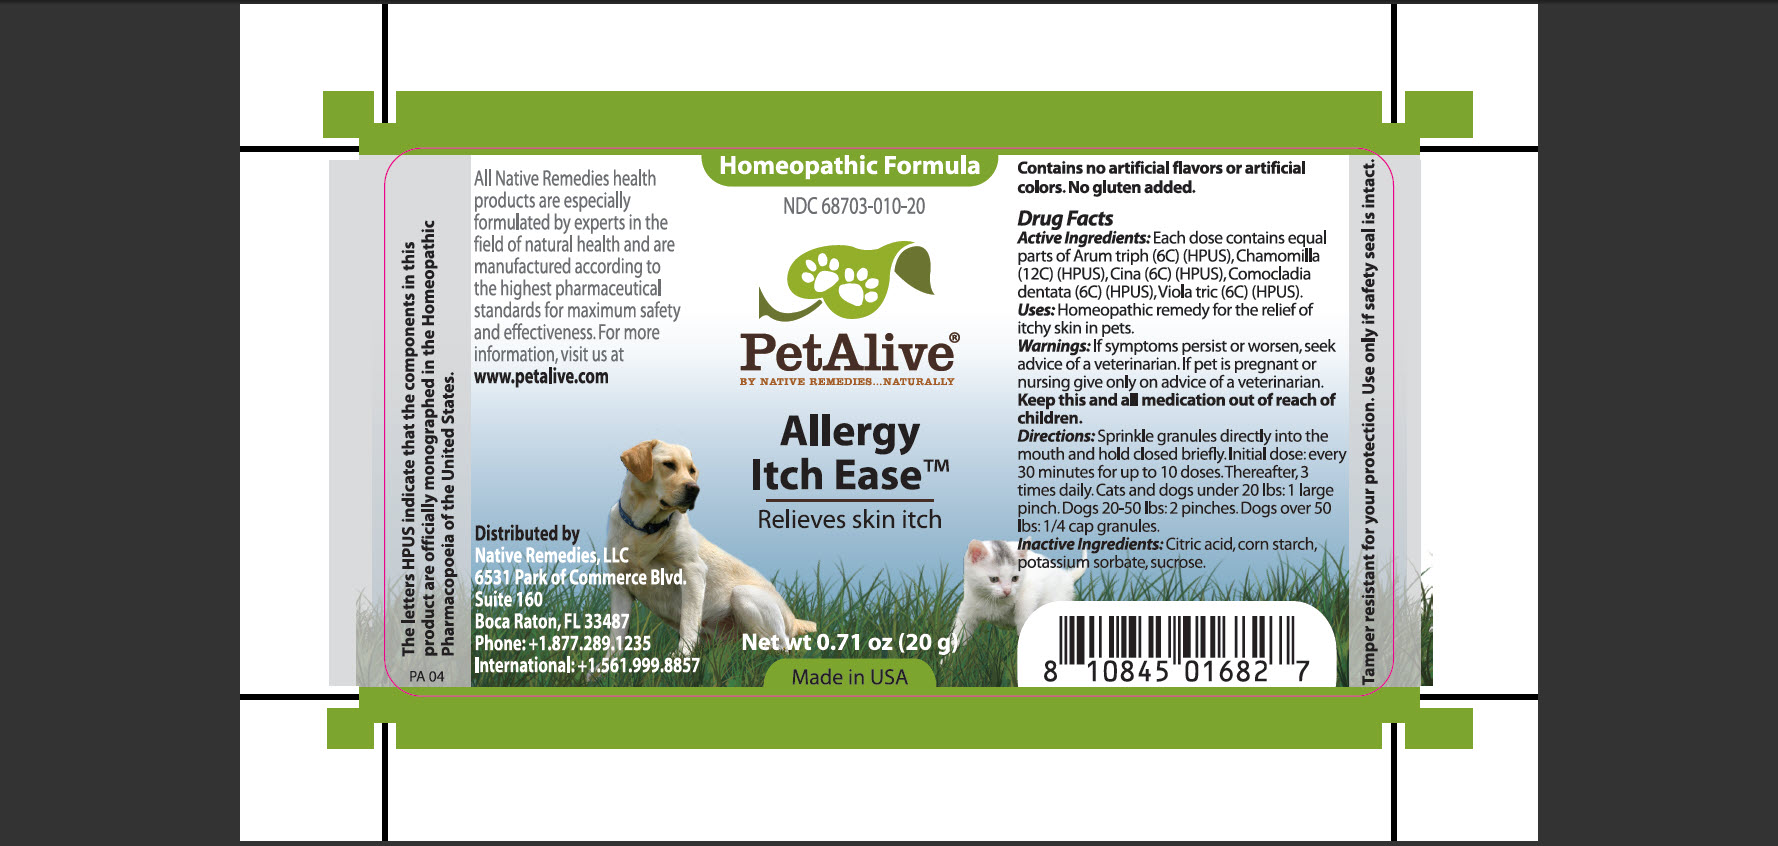 Petalive Allergy Itch Ease (Arum Triph, Chamomilla, Cina, Comocladia Dentata, Viola Tric) Granule [Native Remedies, Llc]